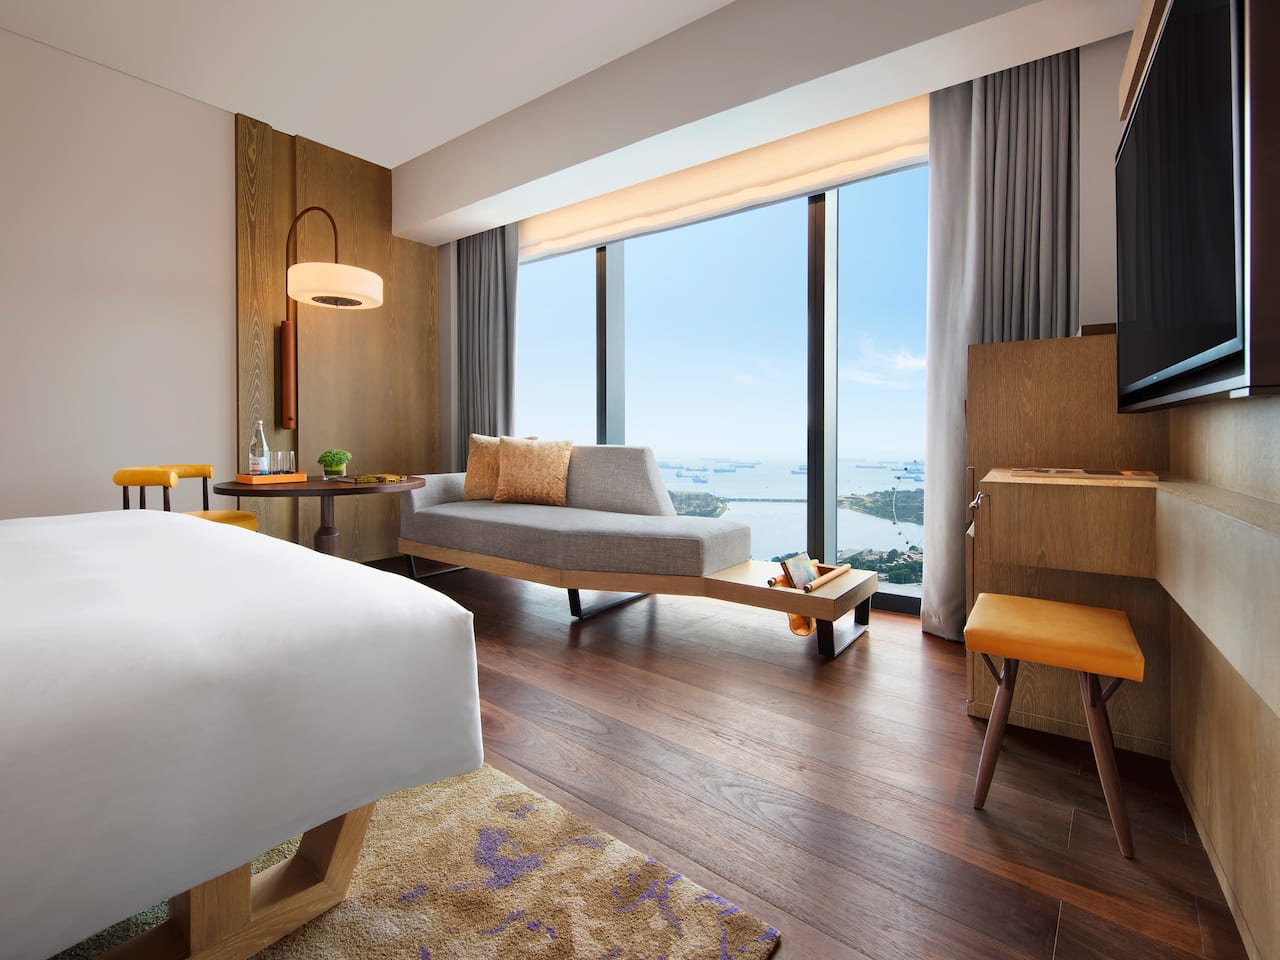 Inspiring hotel rooms skyline views of Singapore, Andaz Singapore